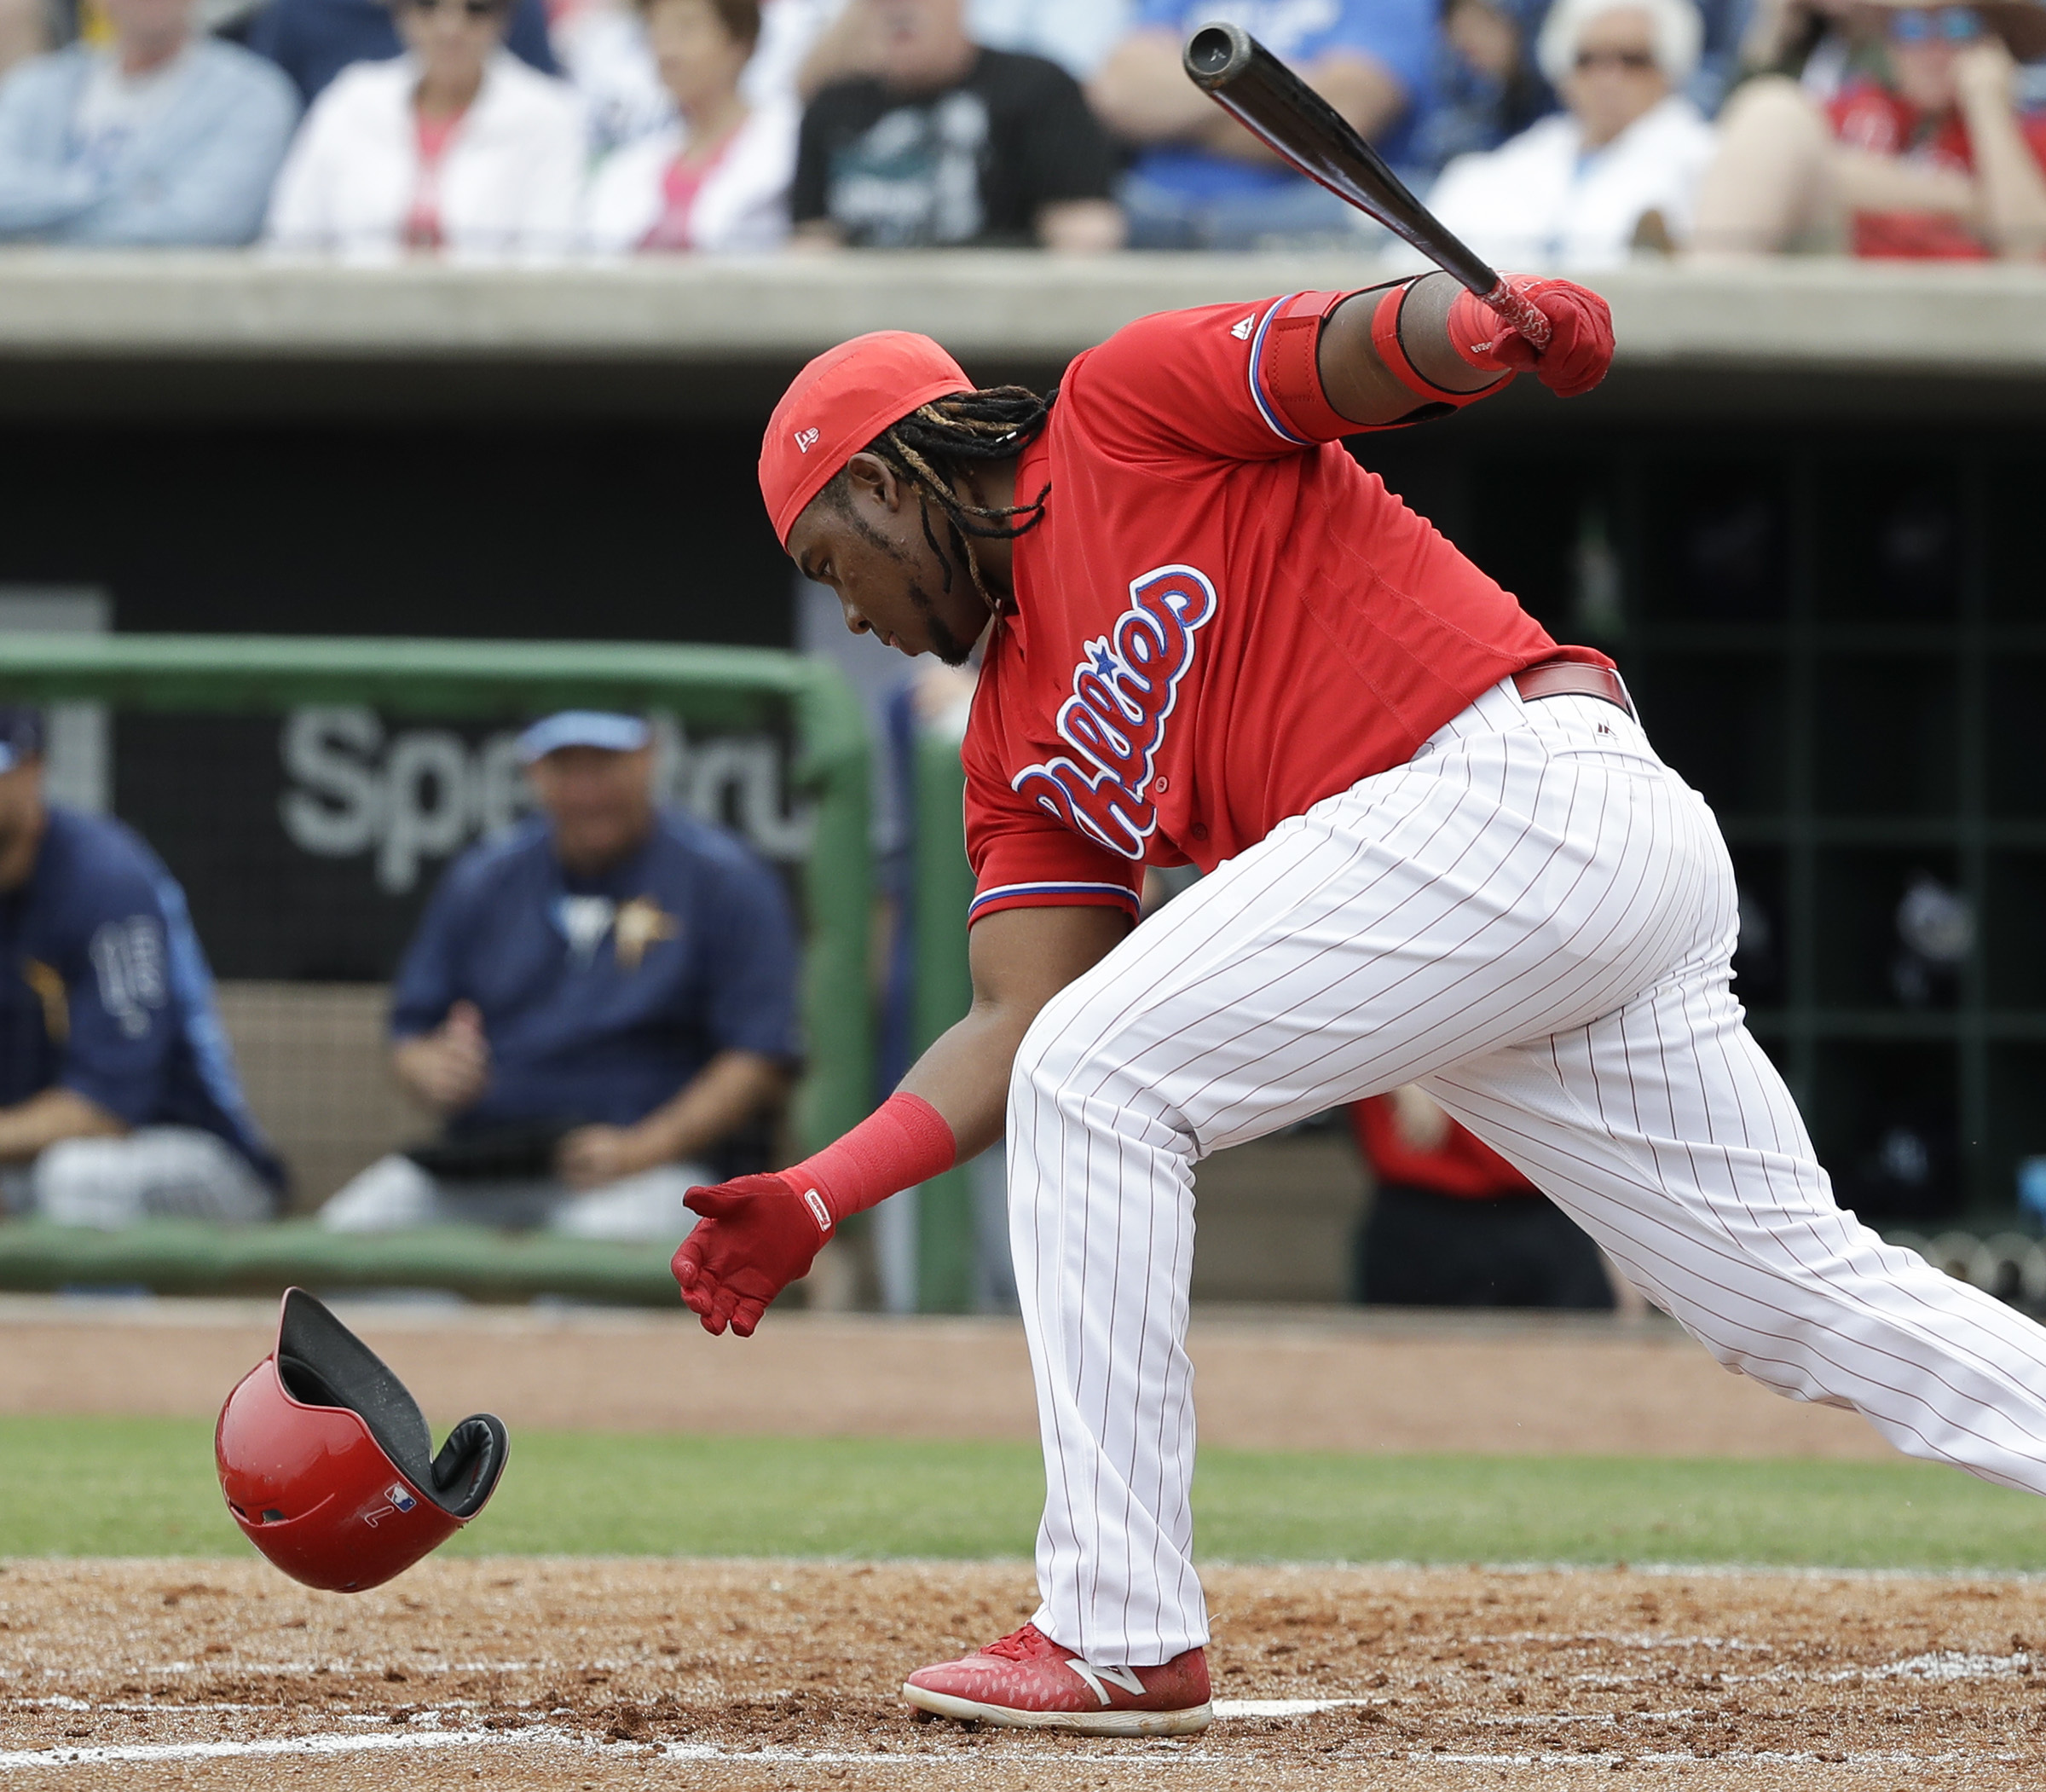 Phillies Maikel Franco loses his batting helmet striking out swinging in the second-inning against the Tampa Bay Rays during a spring training game on Saturday.